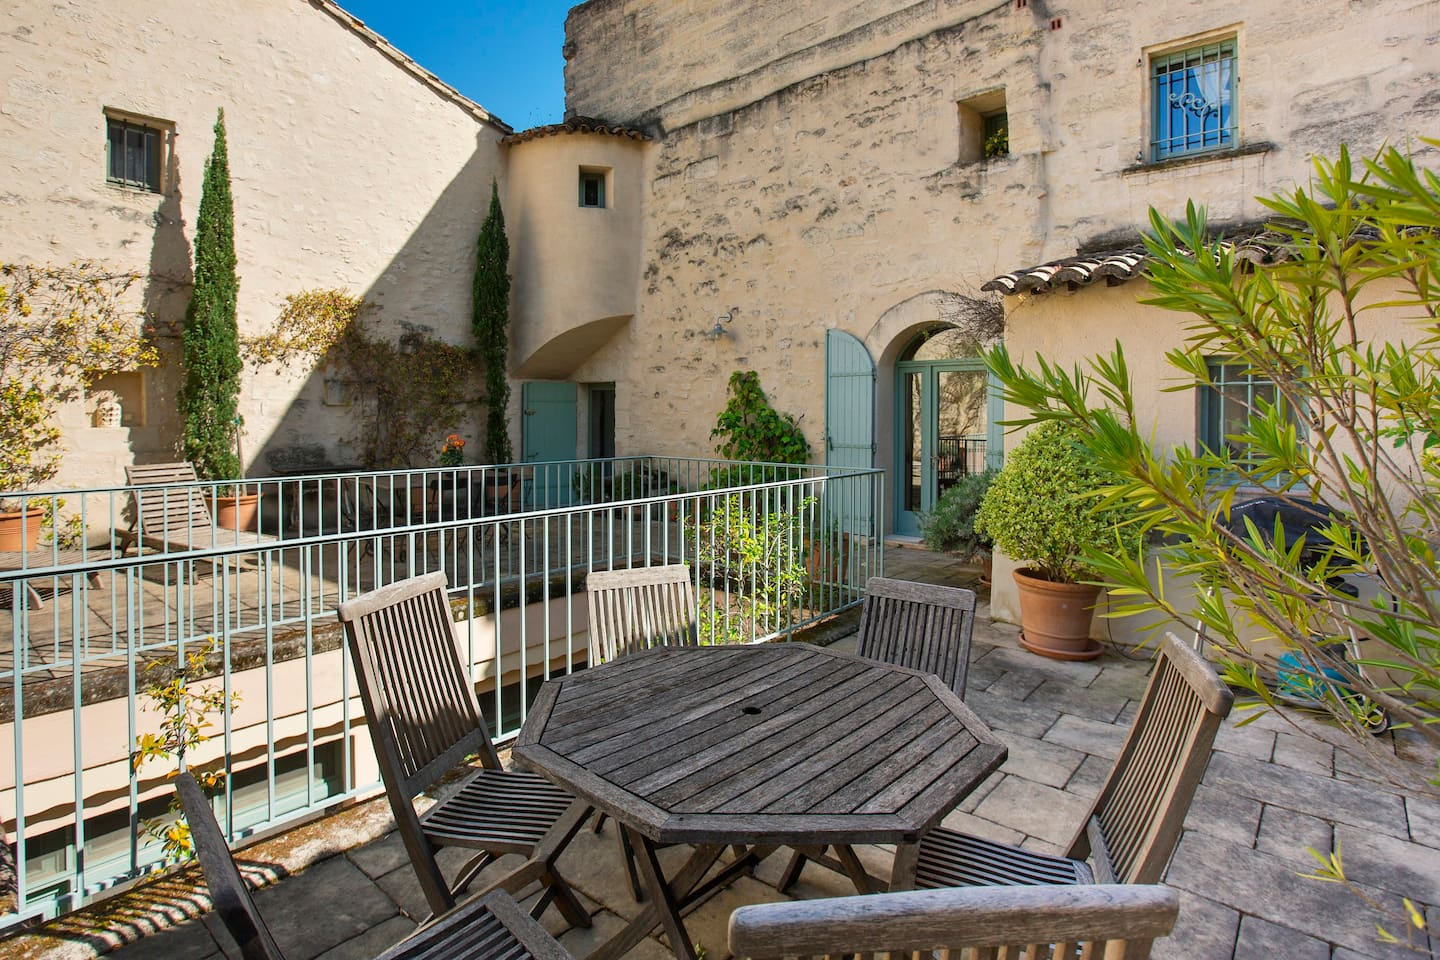 Sunny 80m2 terrace off living room